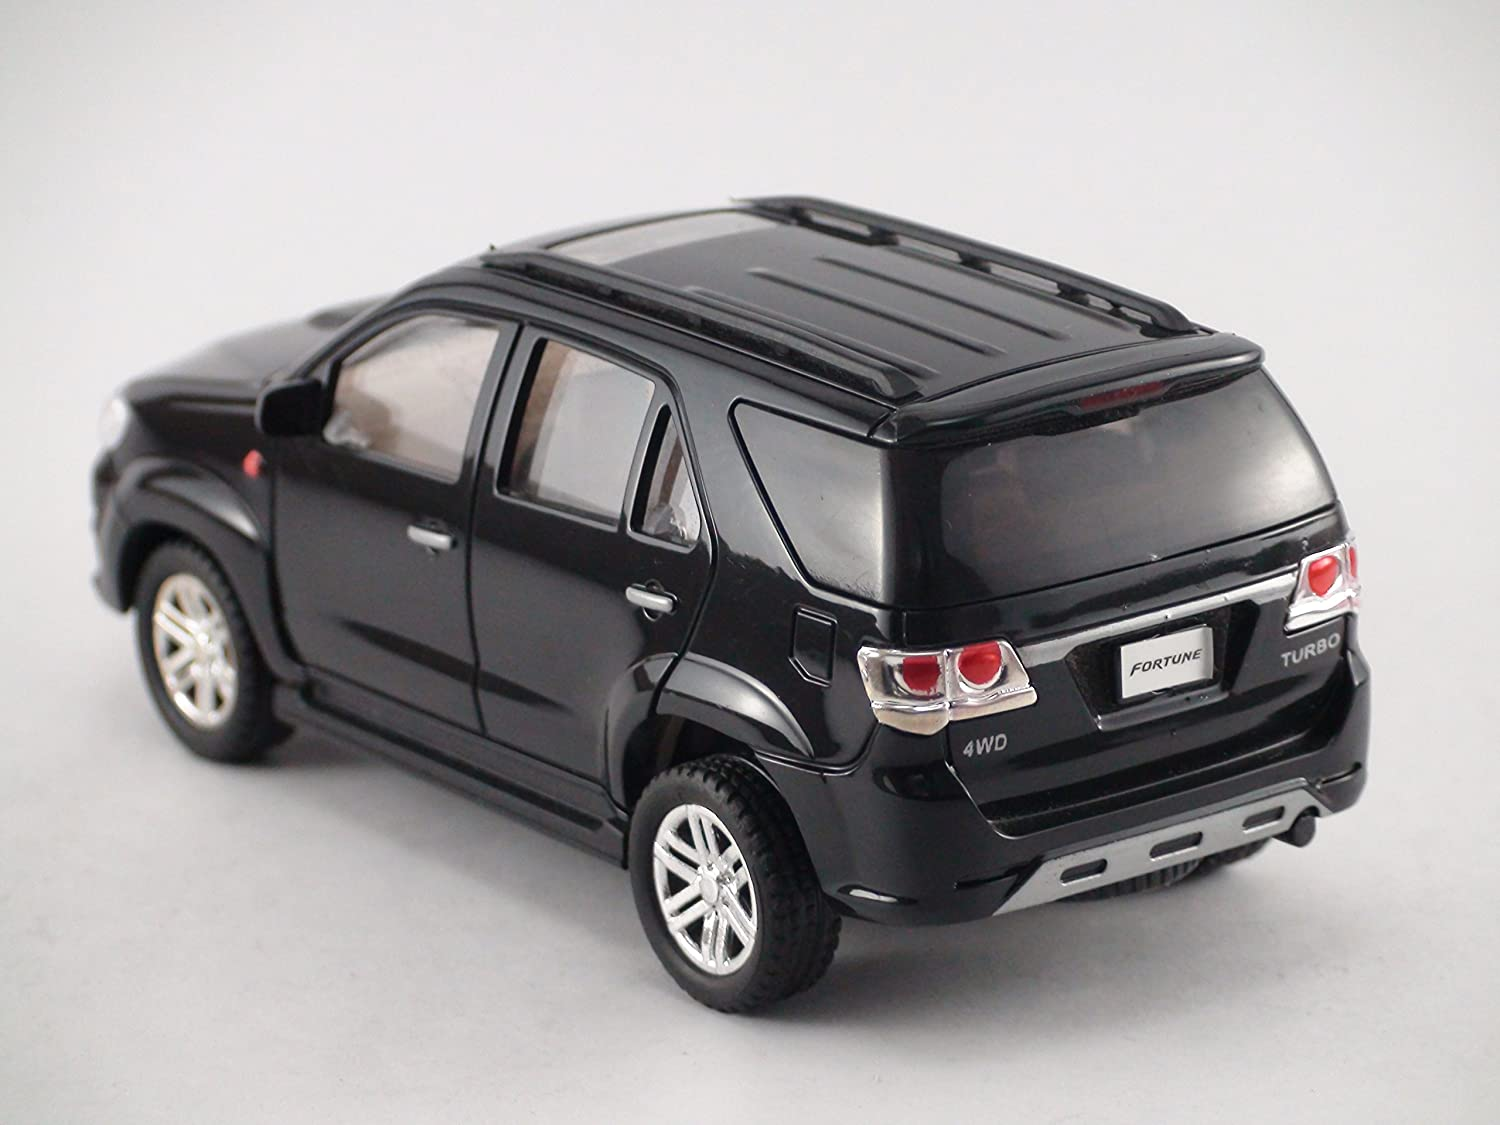 Amazon.com: Centy Toys India - Model Of Fortune (SUV)- Weight 150 grams Black colour: Toys & Games